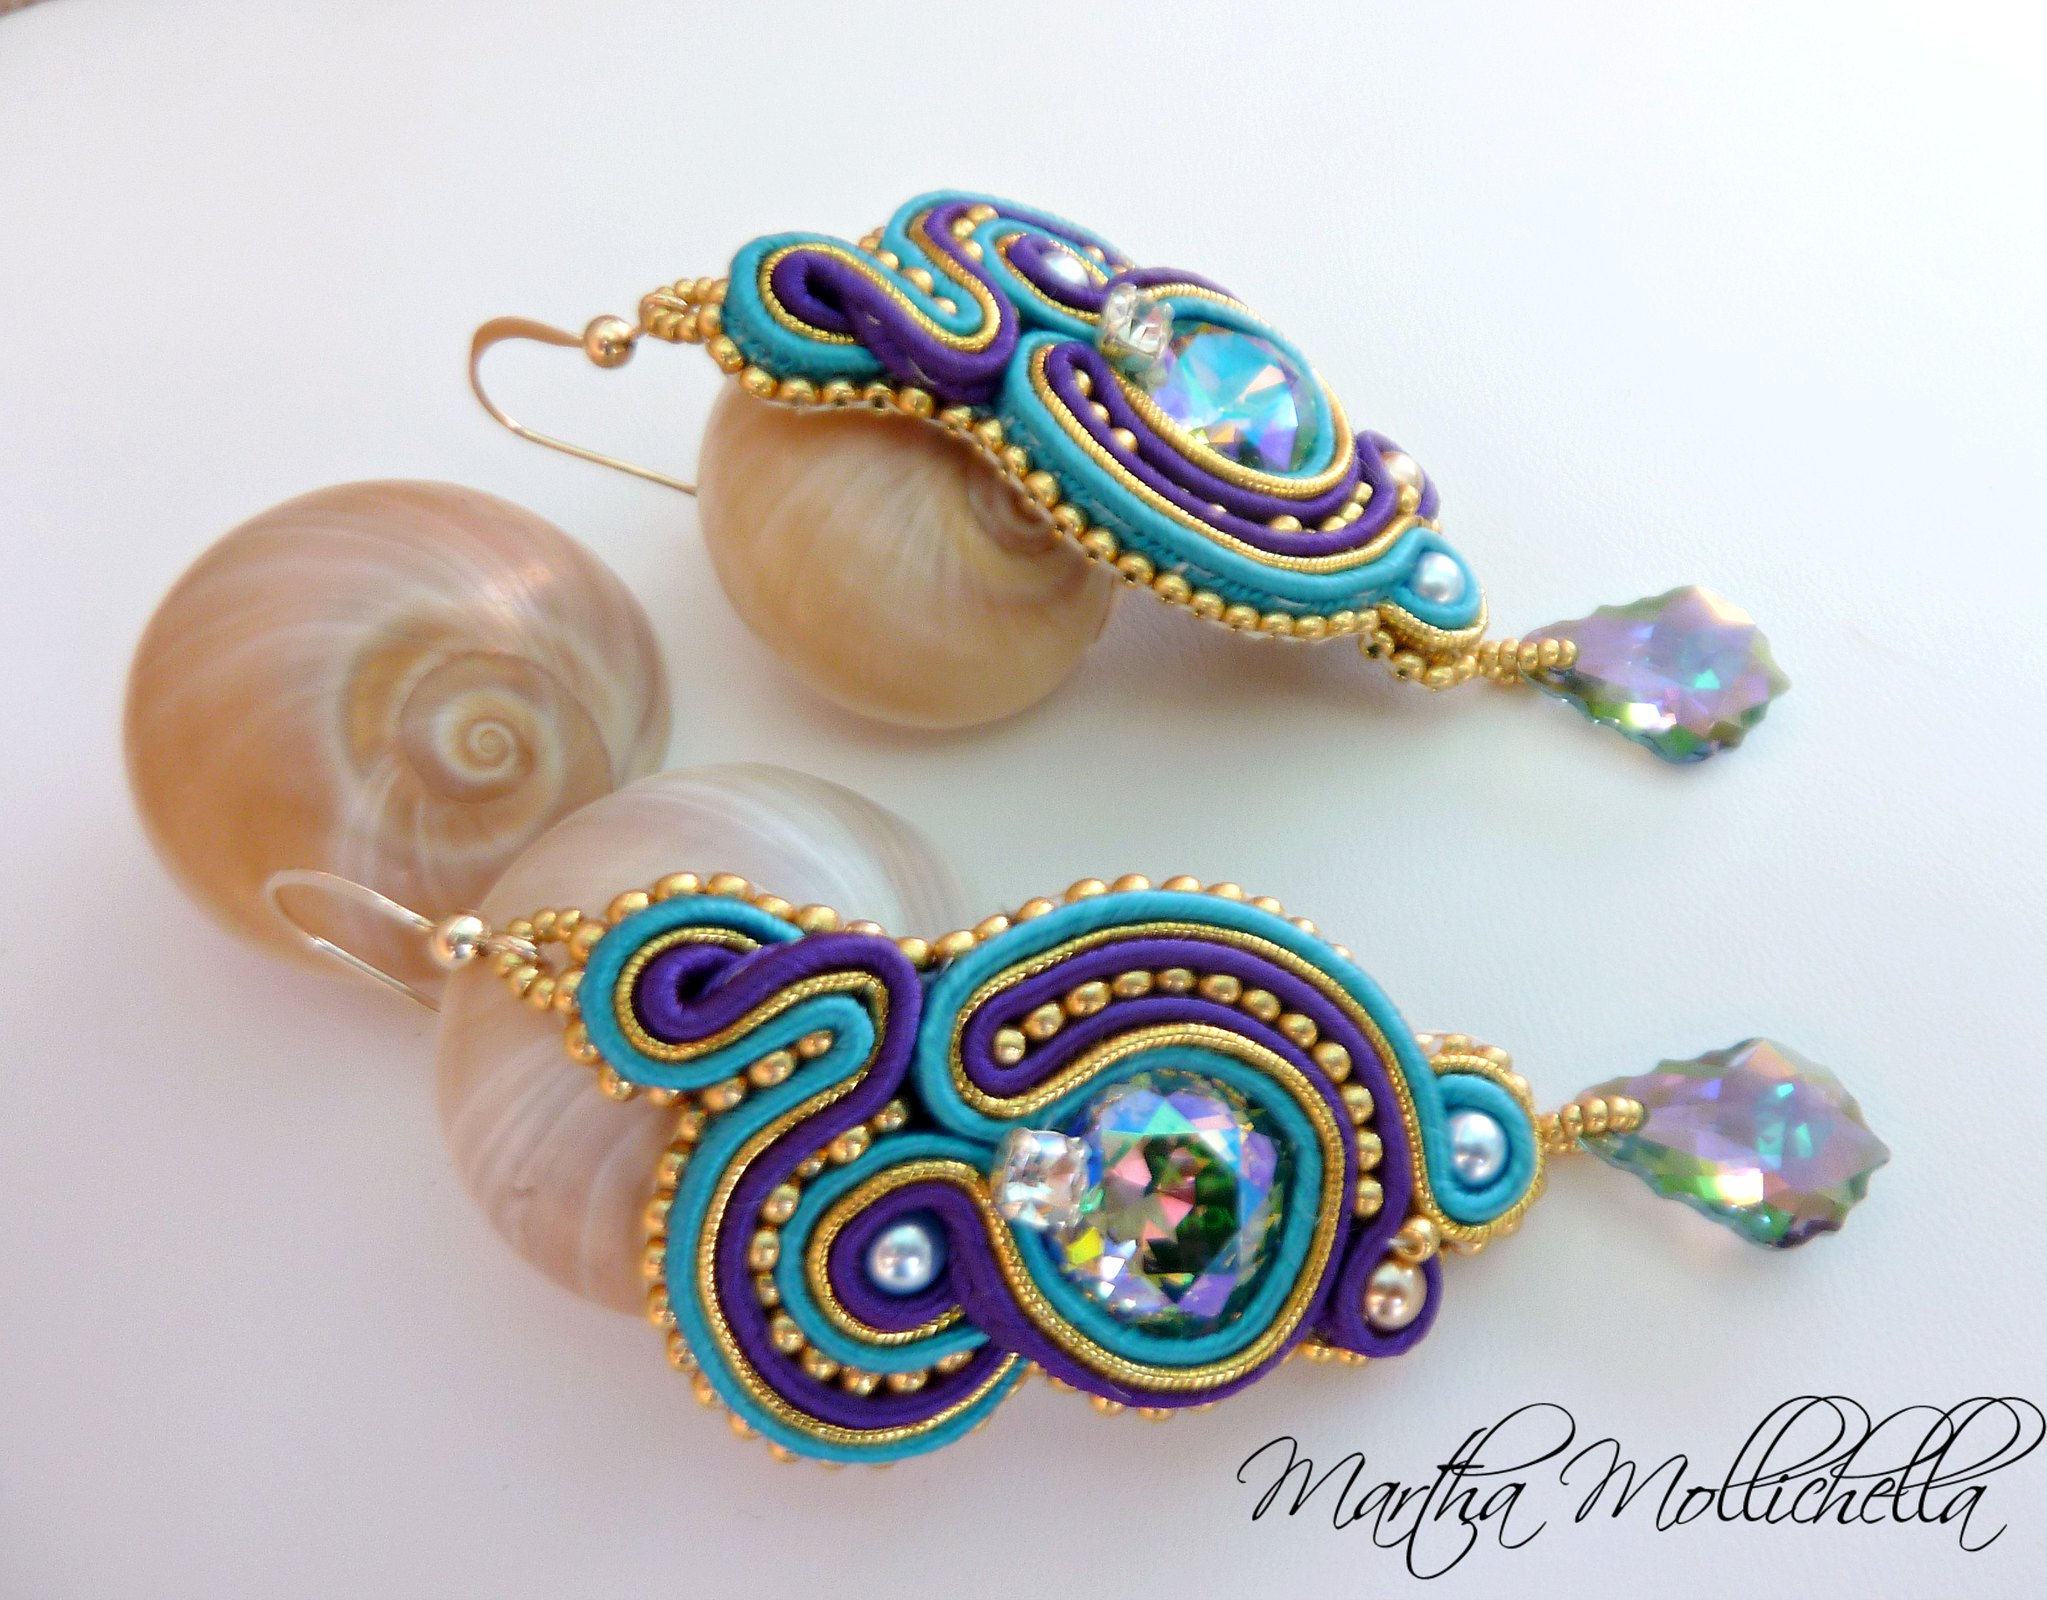 Soutache handmade earrings with Gold 14K Beads and Swarovski Crystals